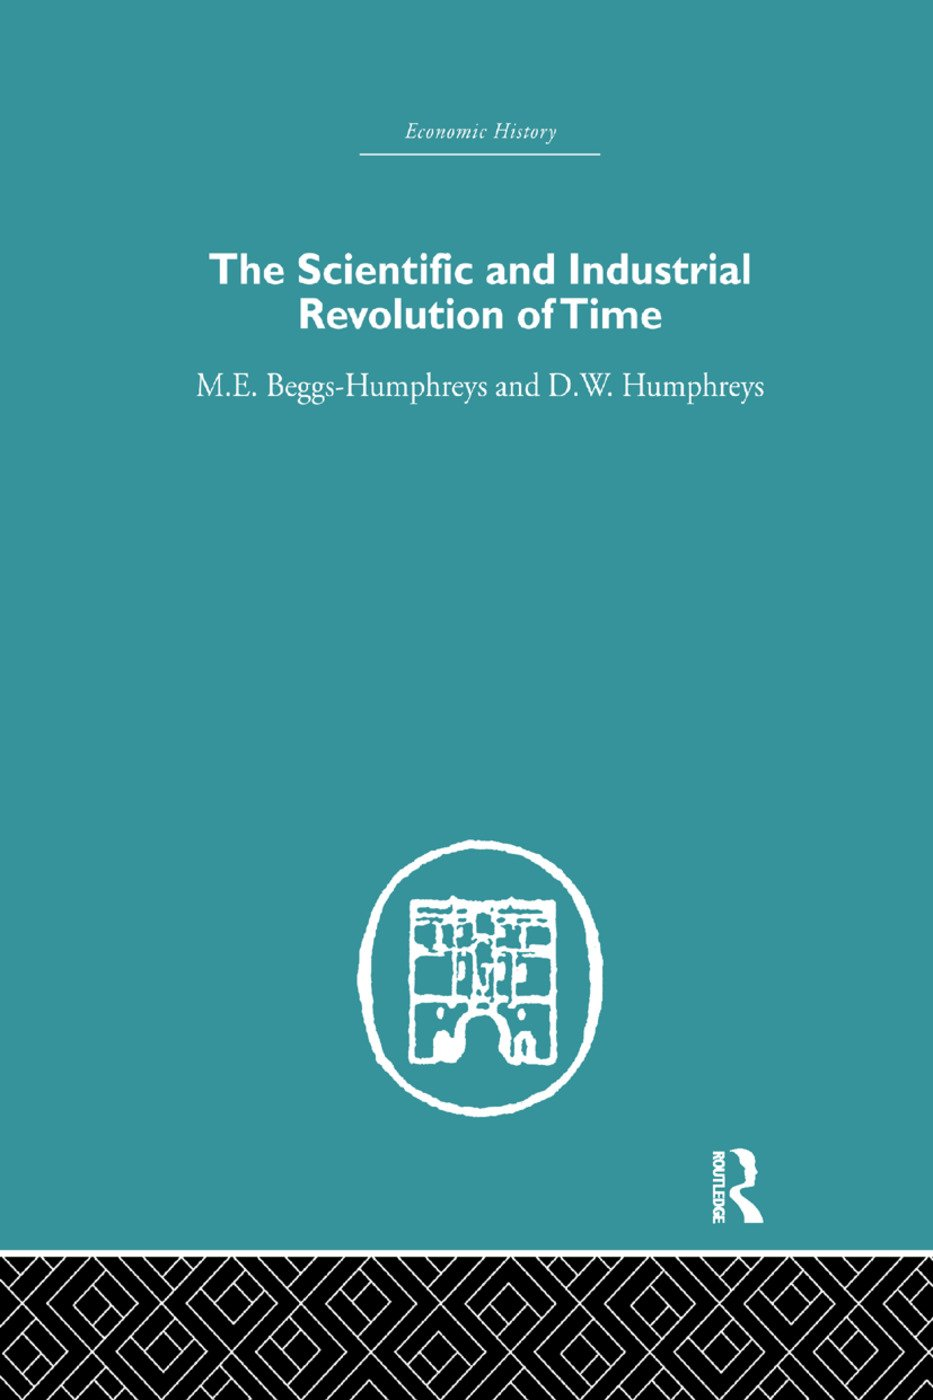 The Scientific and Industrial Revolution of Time book cover